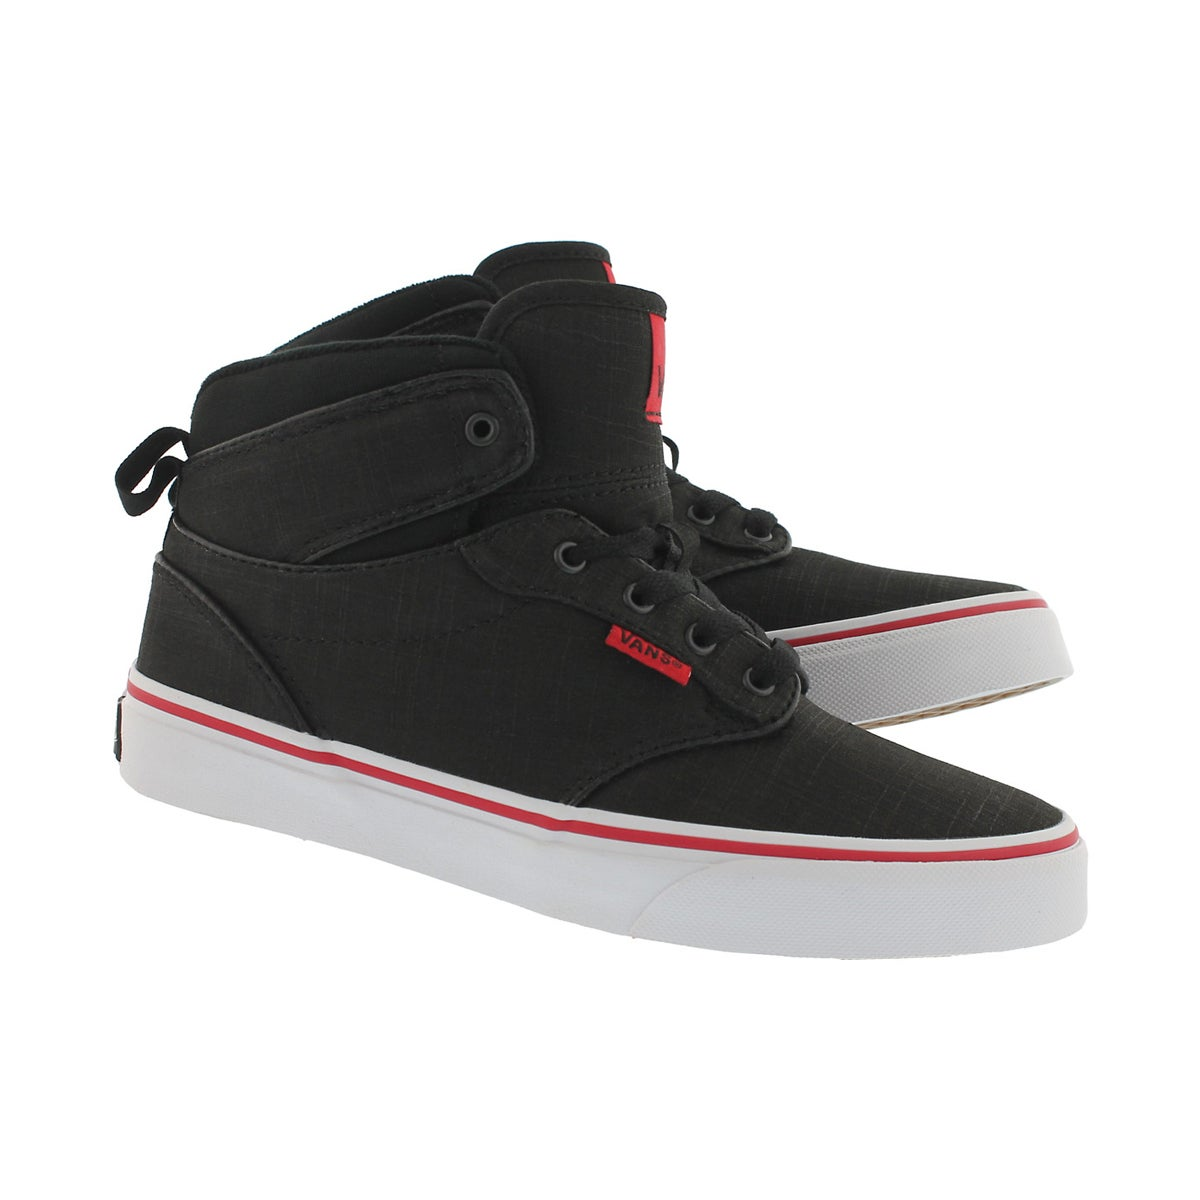 Bys Atwood Hi blk/red lace up sneaker